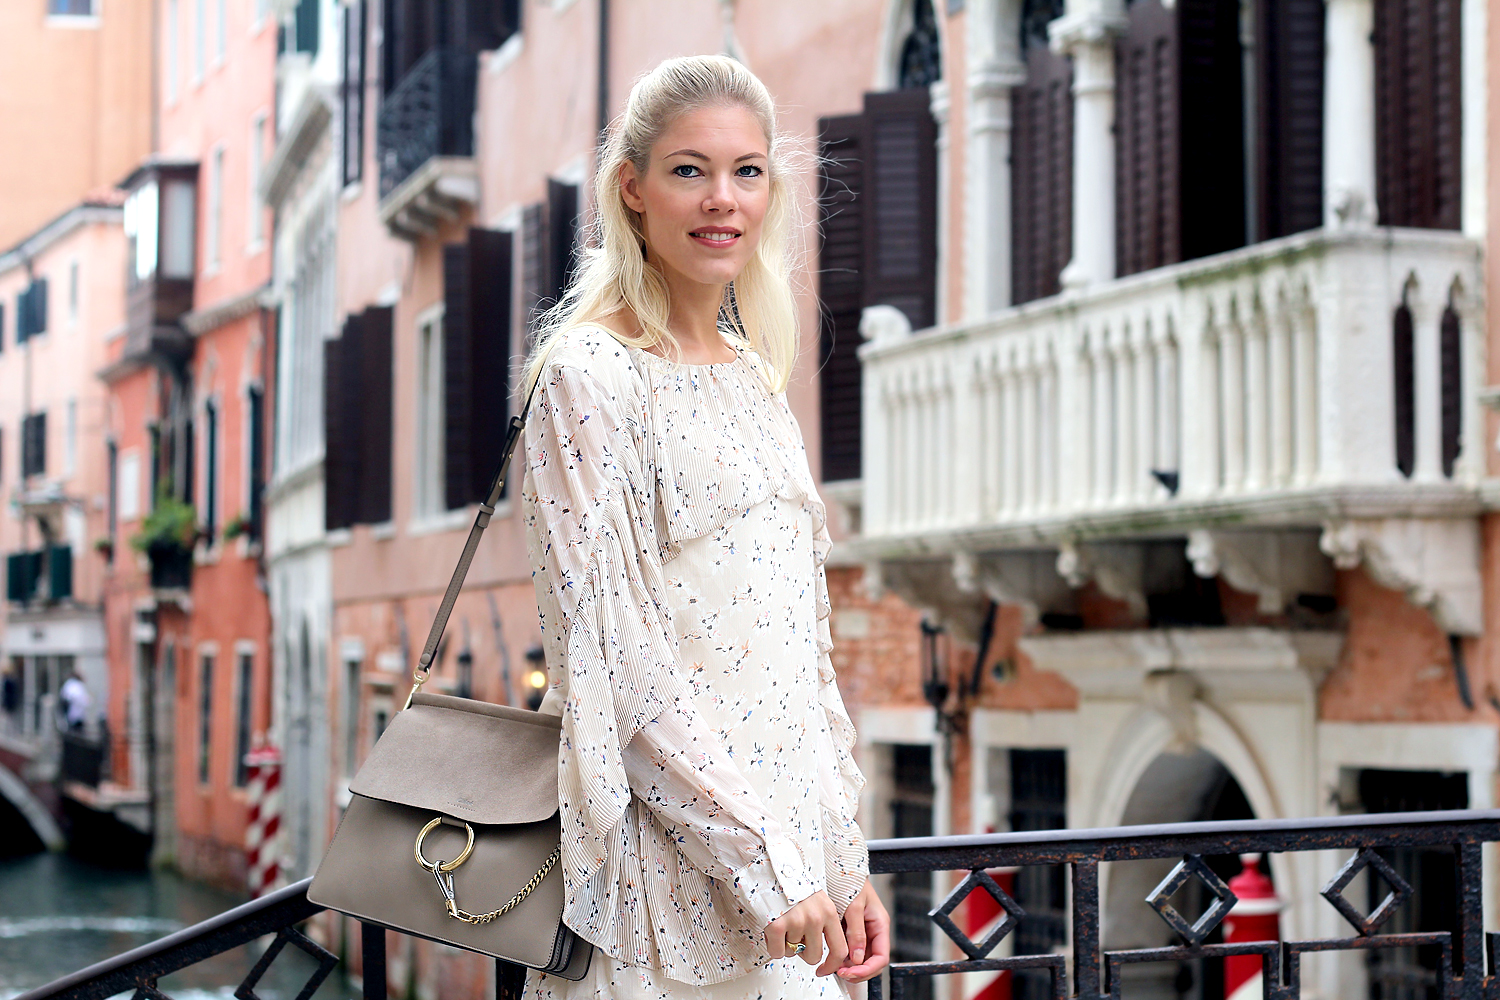 somehappyshoes_fashionblog_chloe_asos_dress_venice